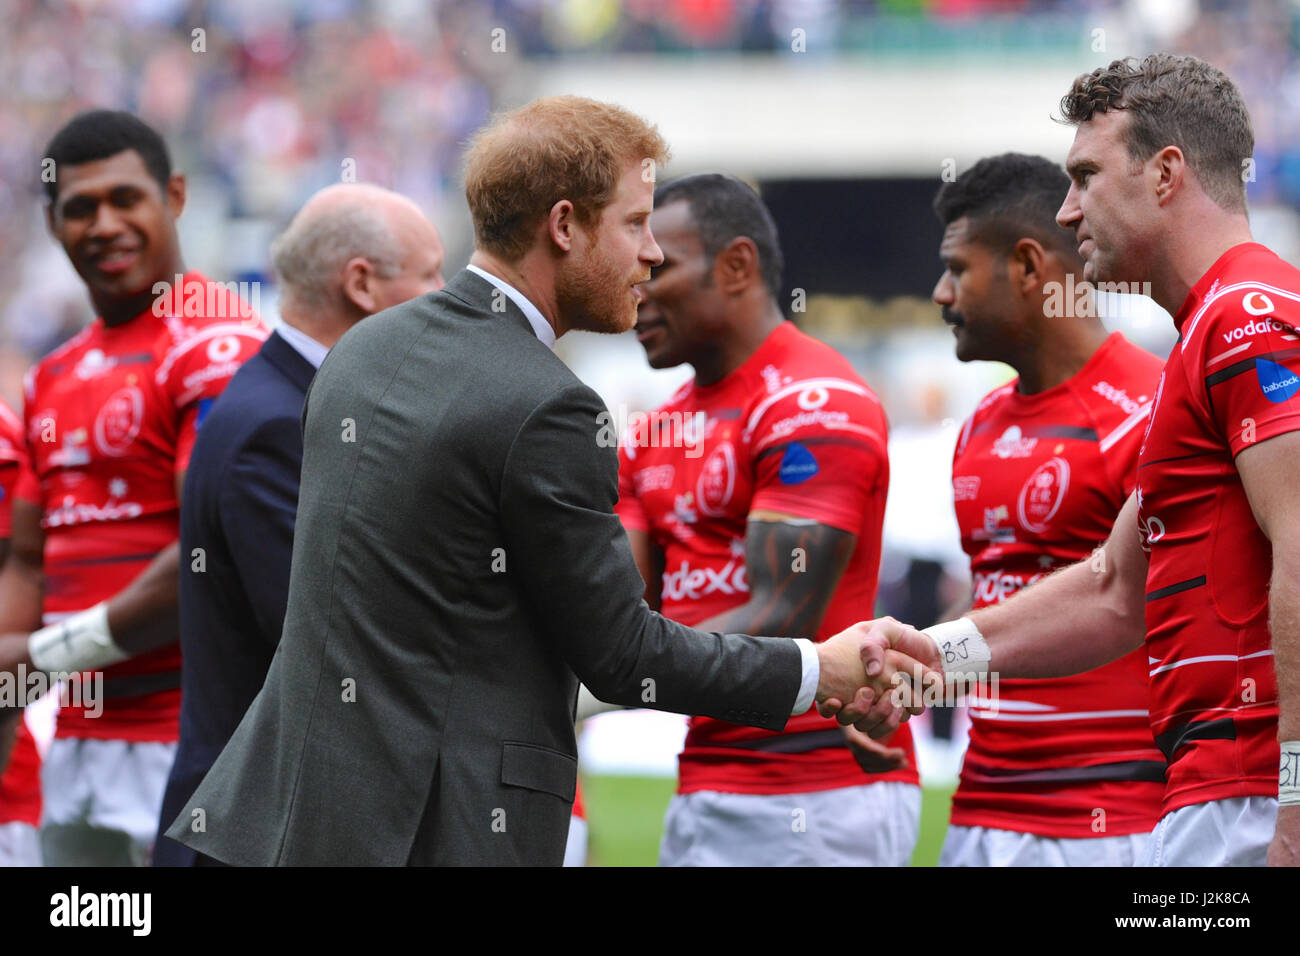 London, UK. 29th Apr, 2017. Price Harry meeting members of the Army Team before the start of the 100th annual Army - Stock Image